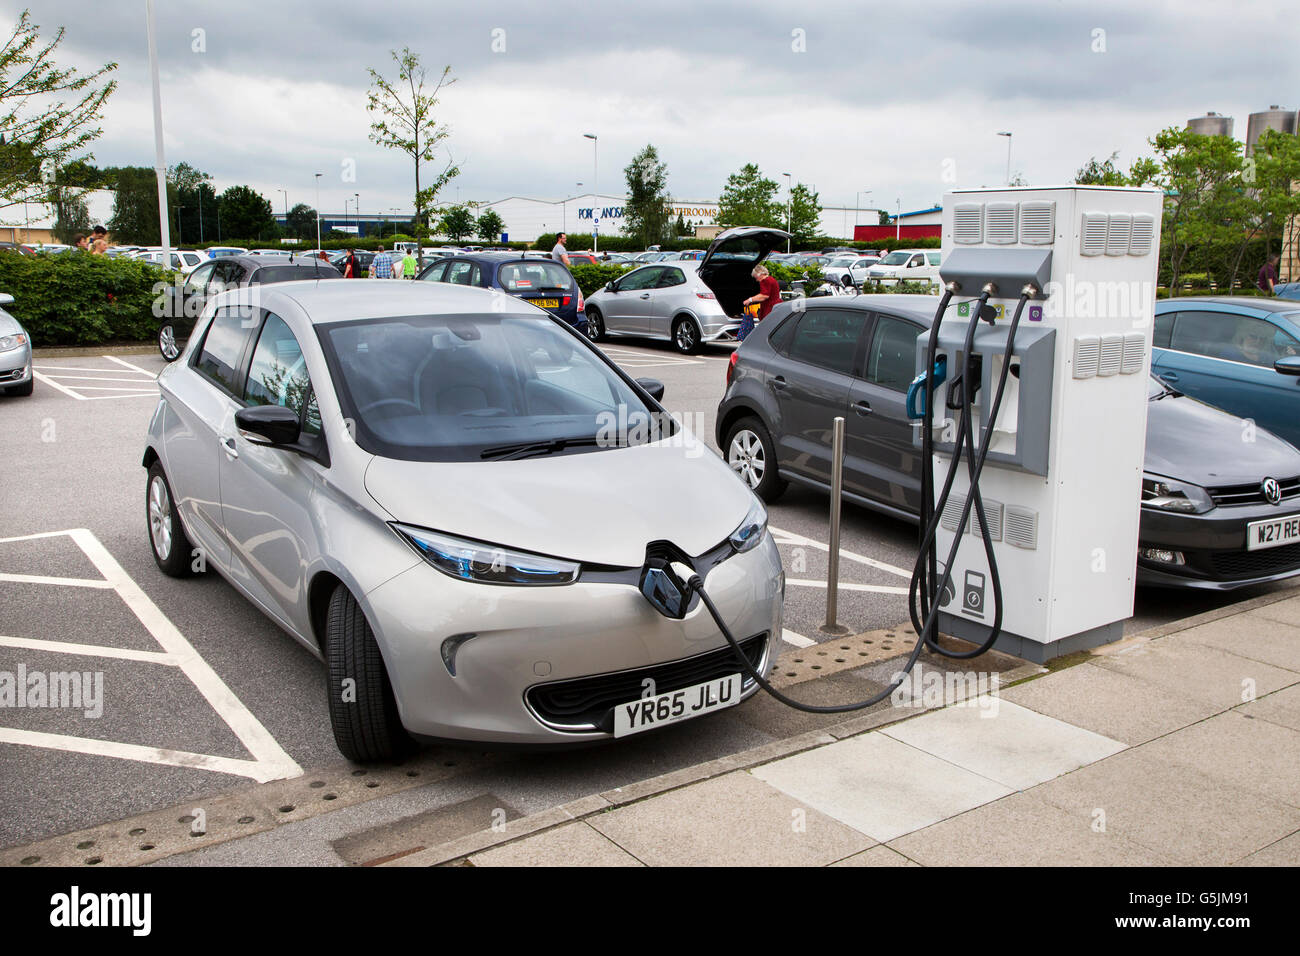 Electric Renault car charging at a recharging point in the car park of a retail shoppping outlet in Doncaster South - Stock Image